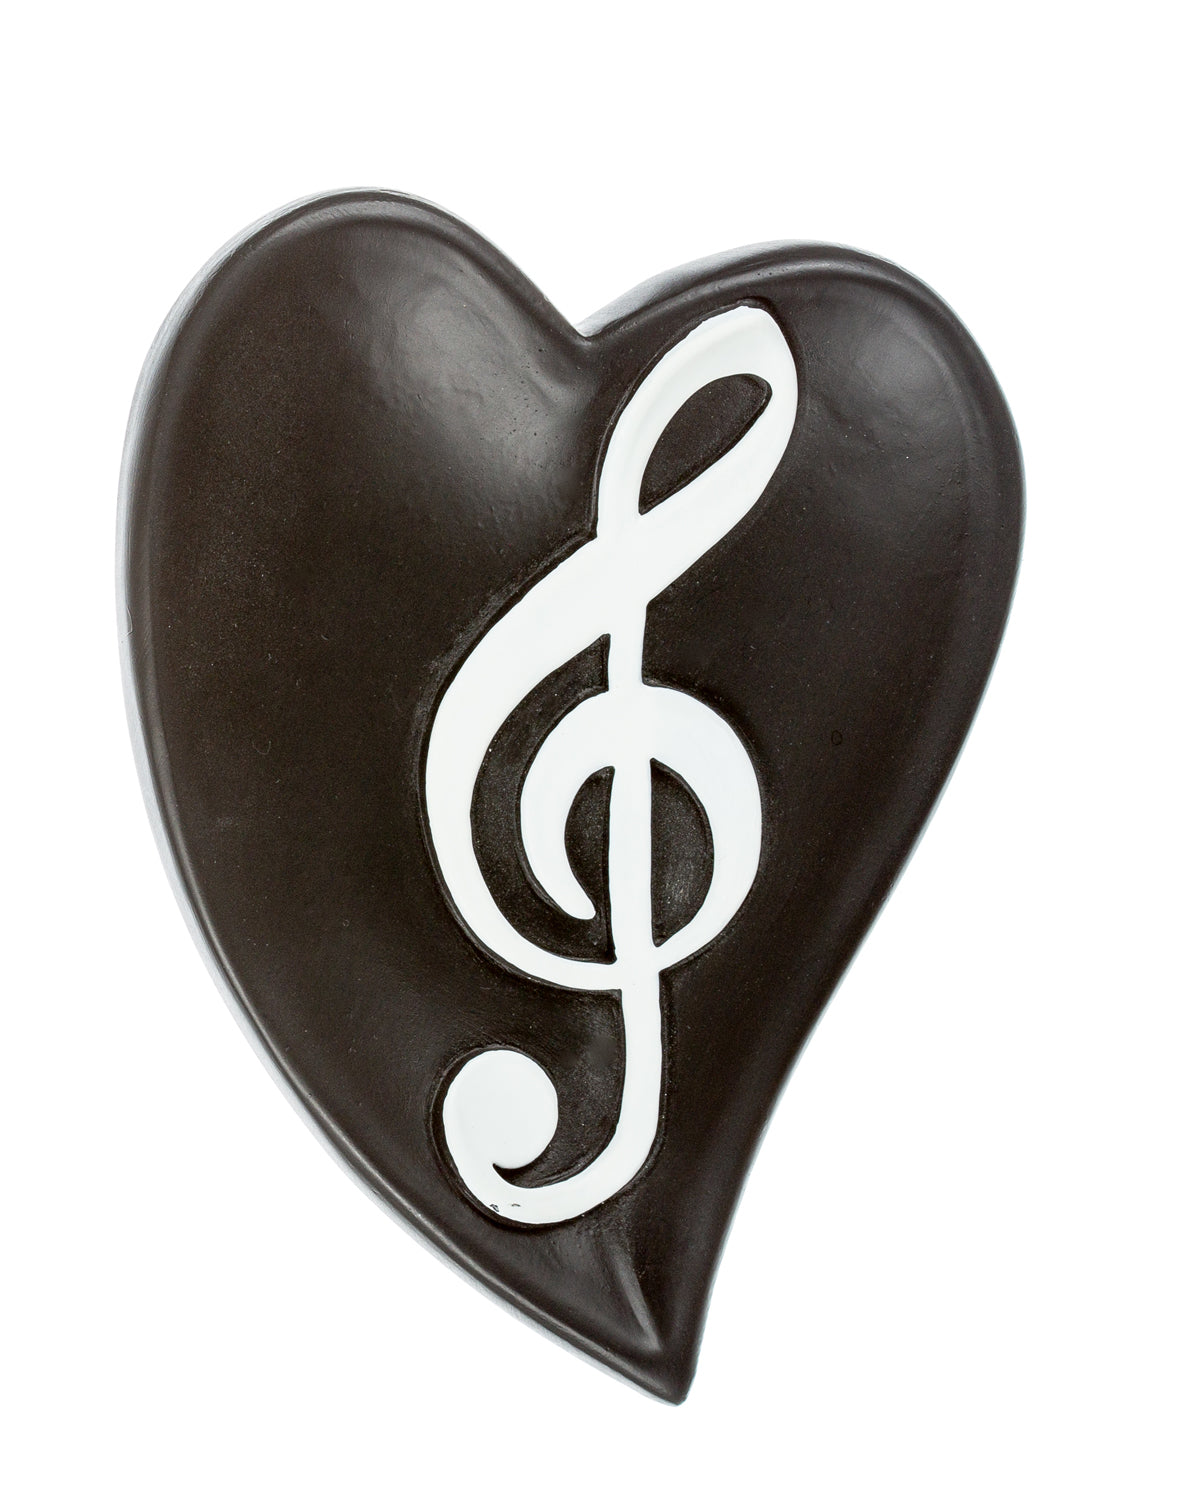 Music Heart Soap Dish